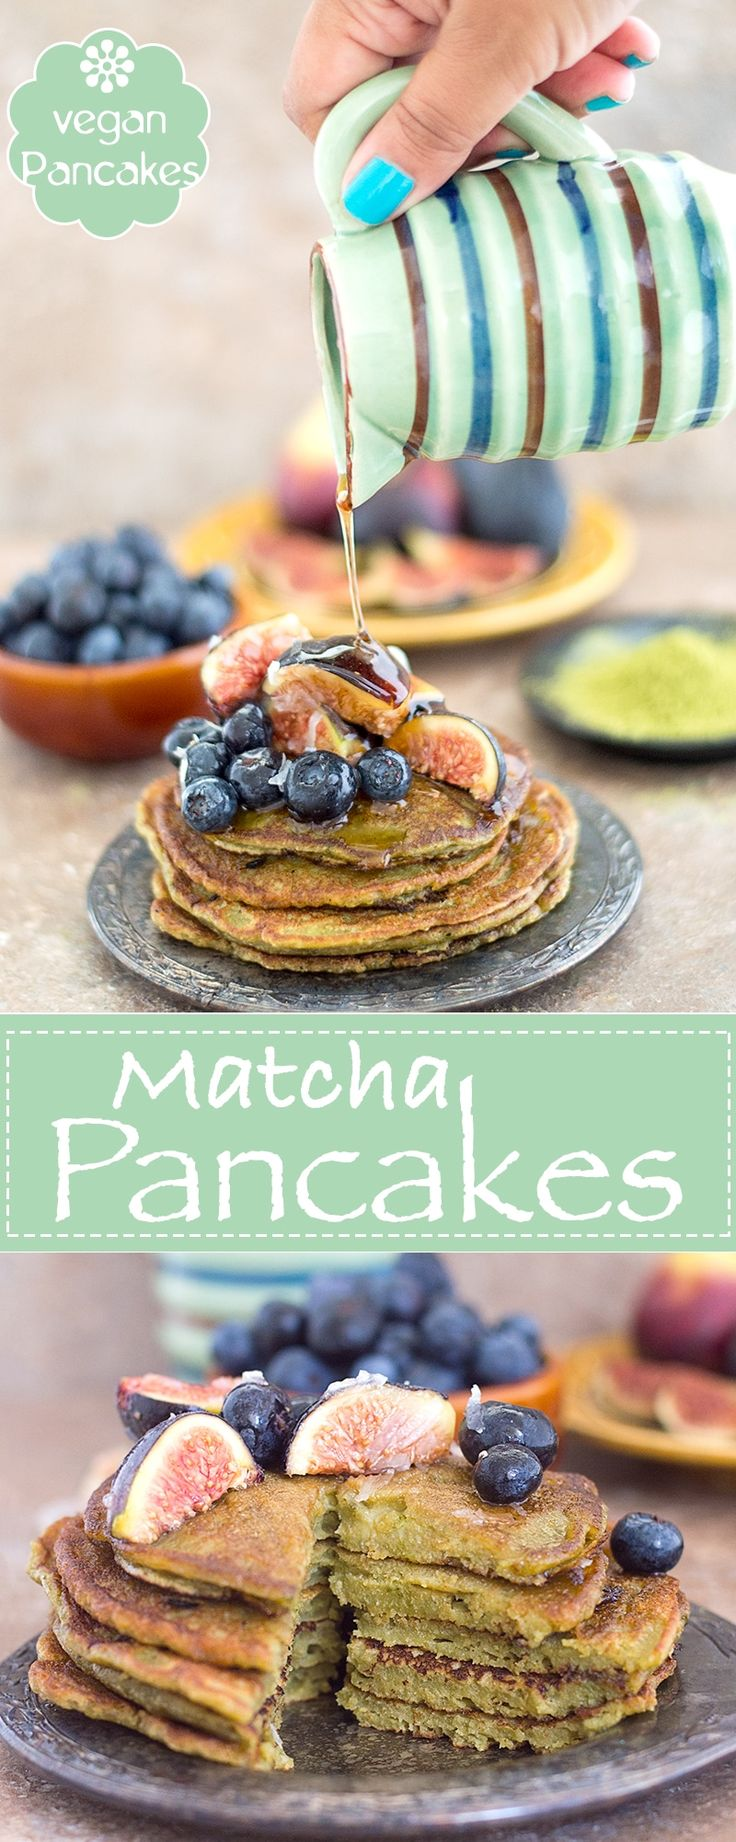 Have You Tried Matcha Green Tea Powder? This is My First Time Using it in a Recipe and Totally Love It! This is now the Best Vegan Pancake Recipe I Have Ever Made! I Topped with Figs and Blueberries Mixed with Agave | Vegan breakfast, vegan brunch, matcha recipes, Easy pancakes, vegan pancakes, vegetarian pancakes